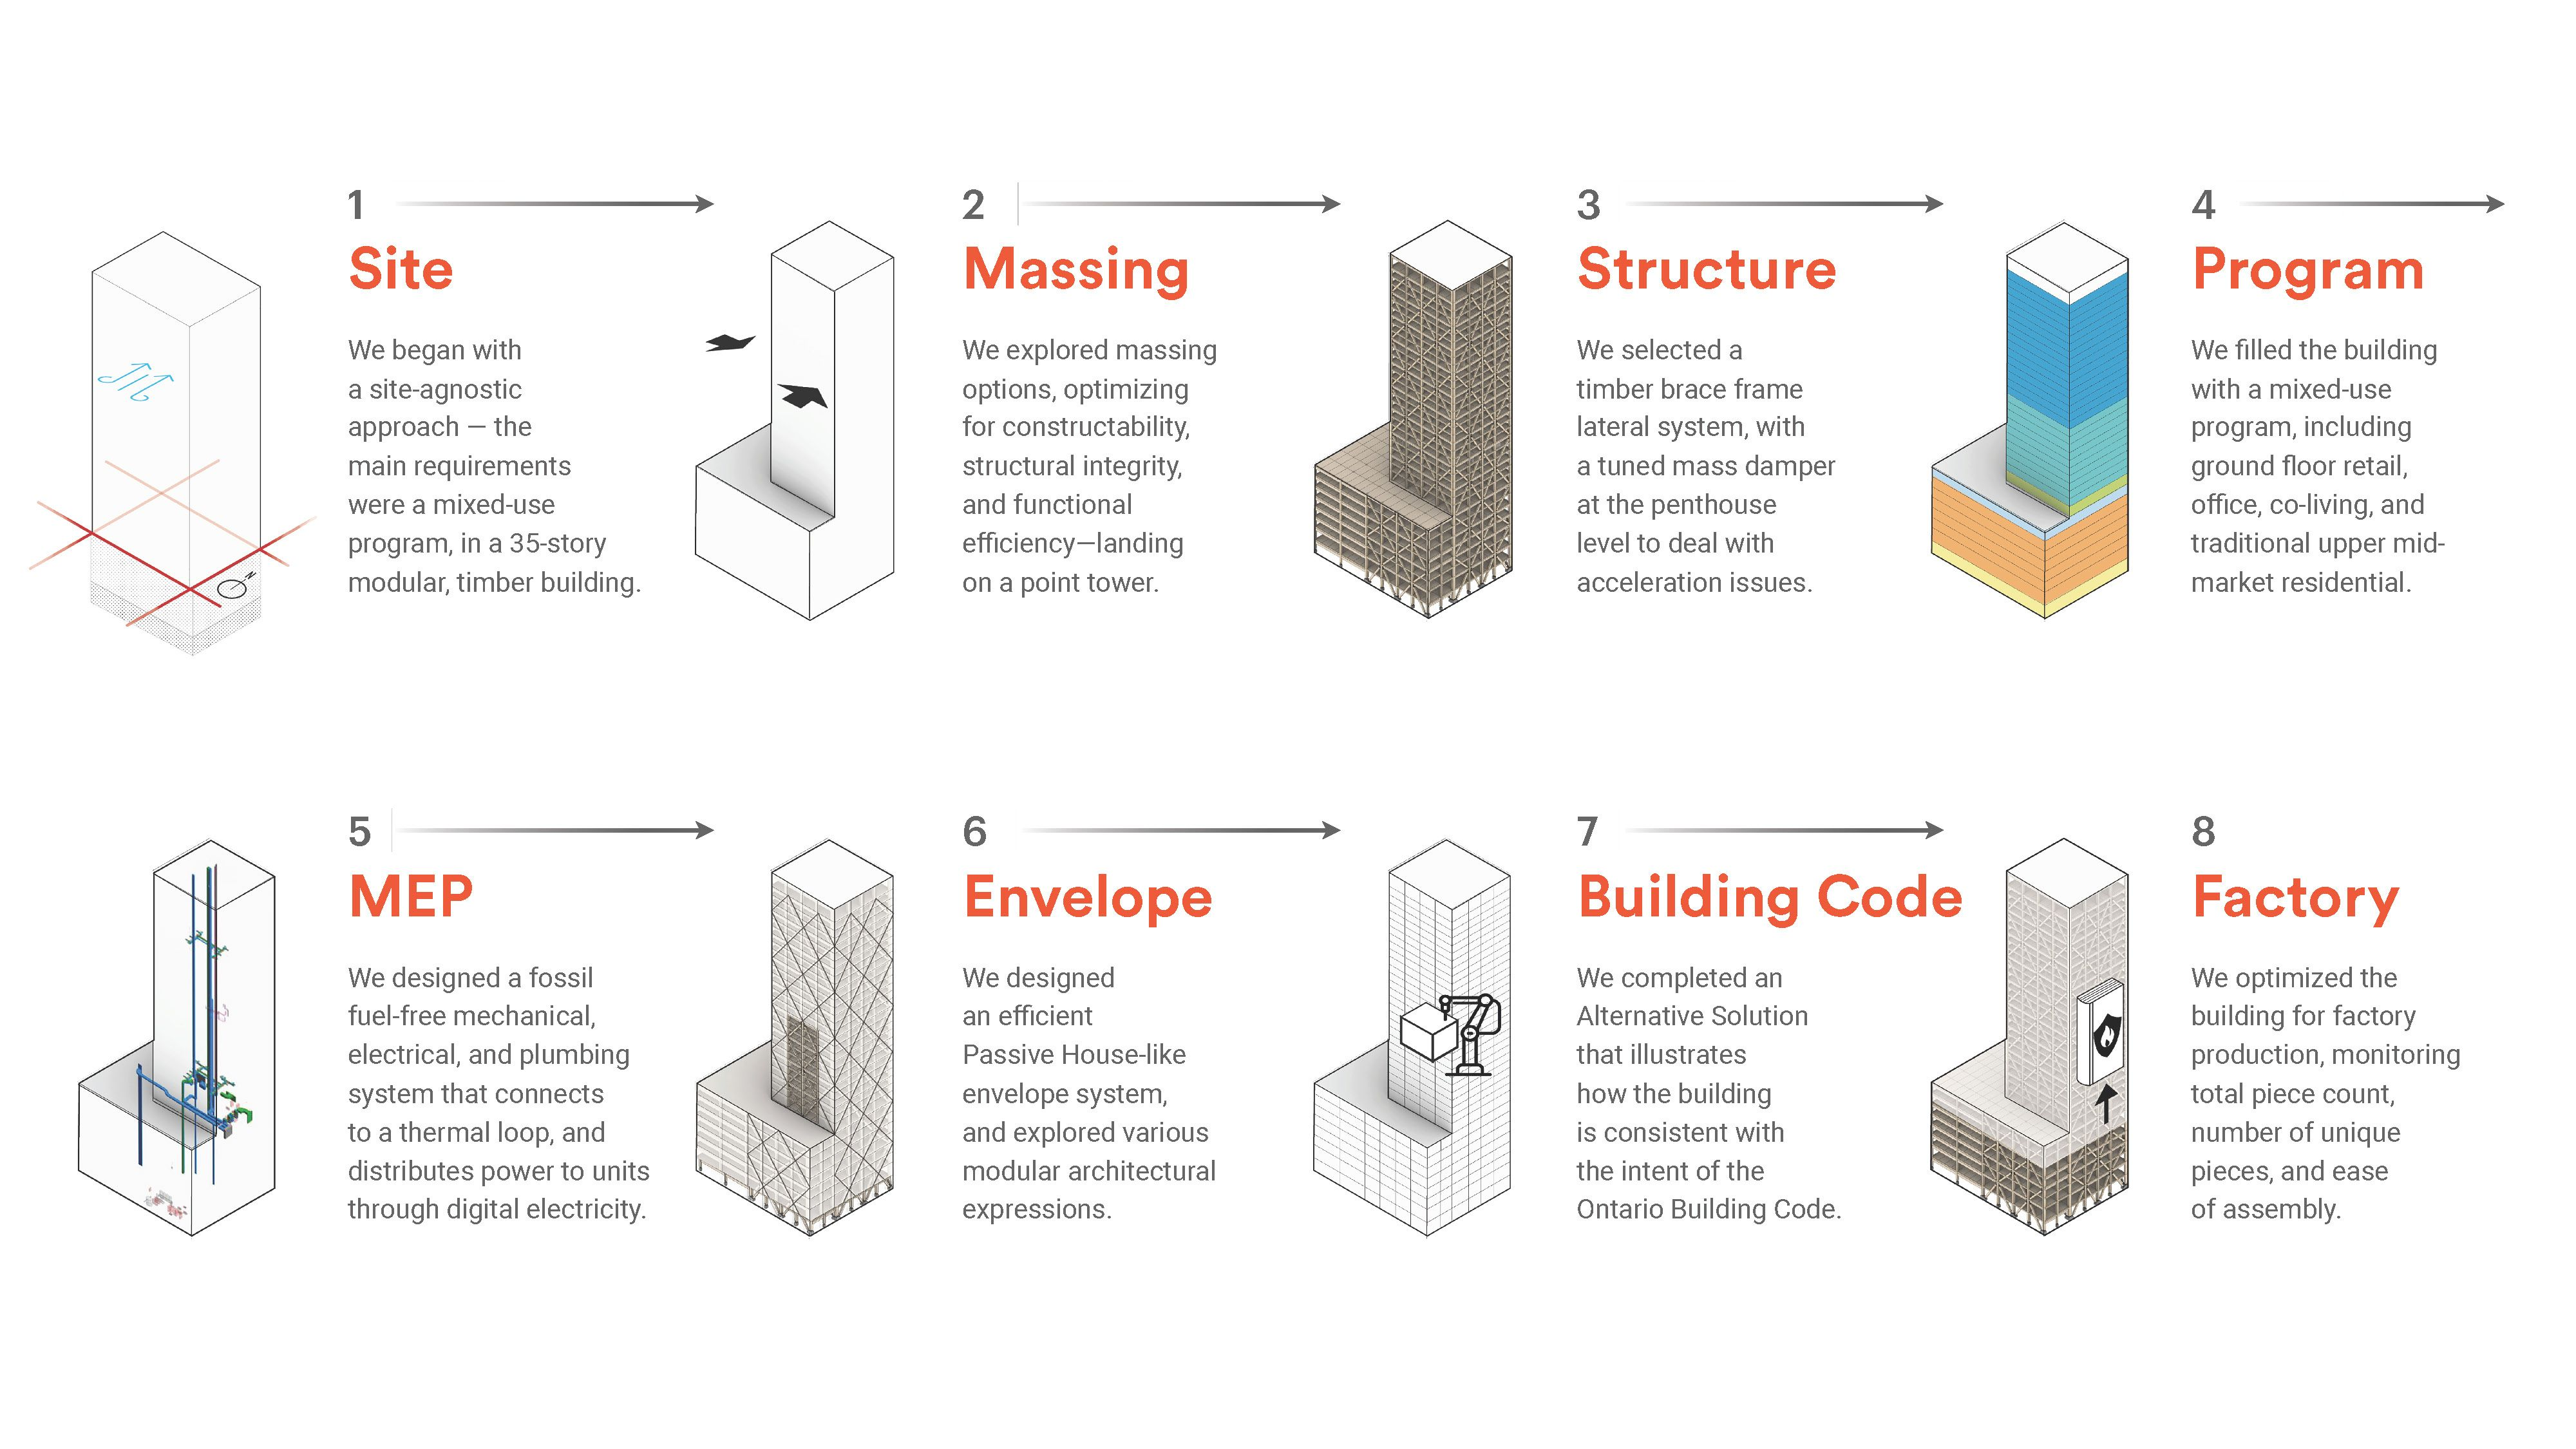 Illustration of the 8 stages of building